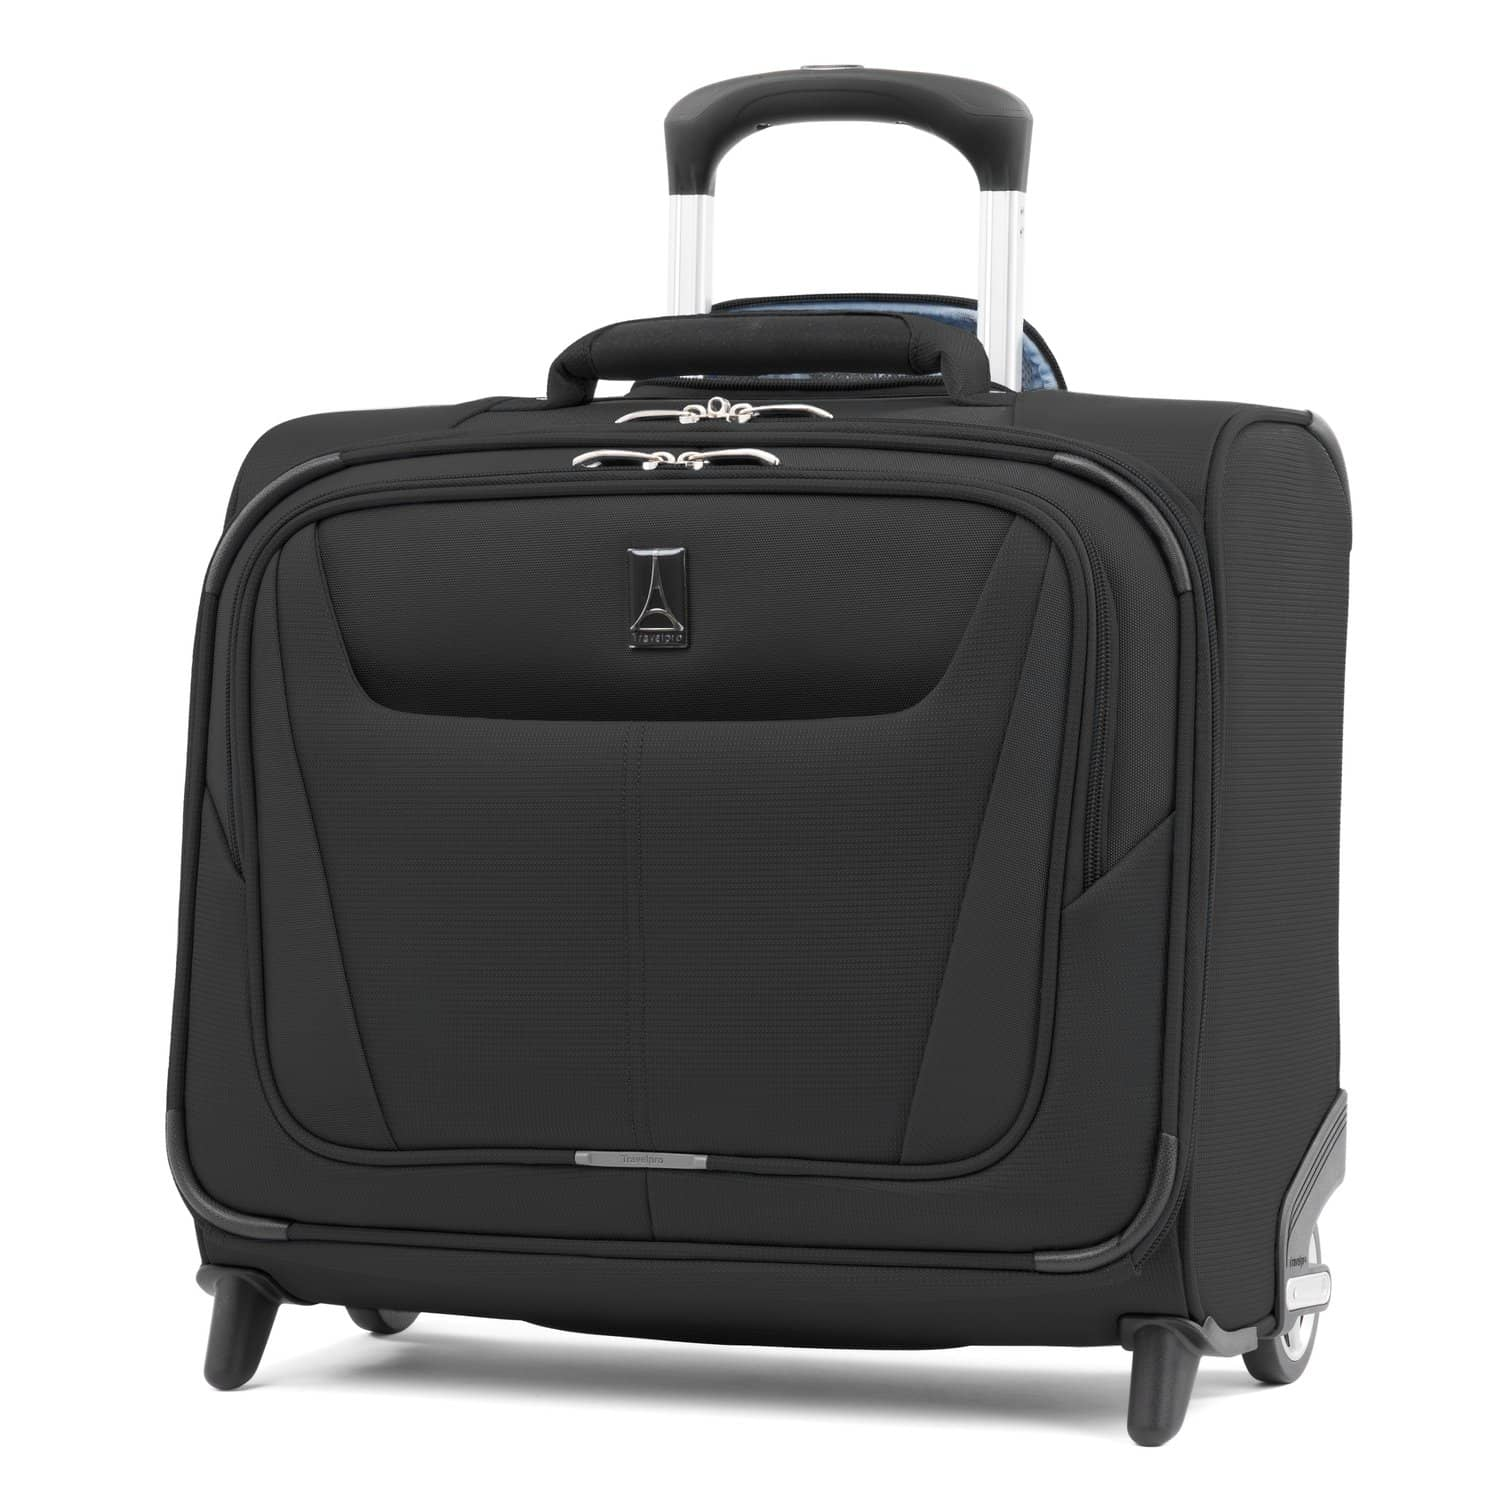 Travelpro Maxlite® 5 Carry-on Rolling Tote BLACK